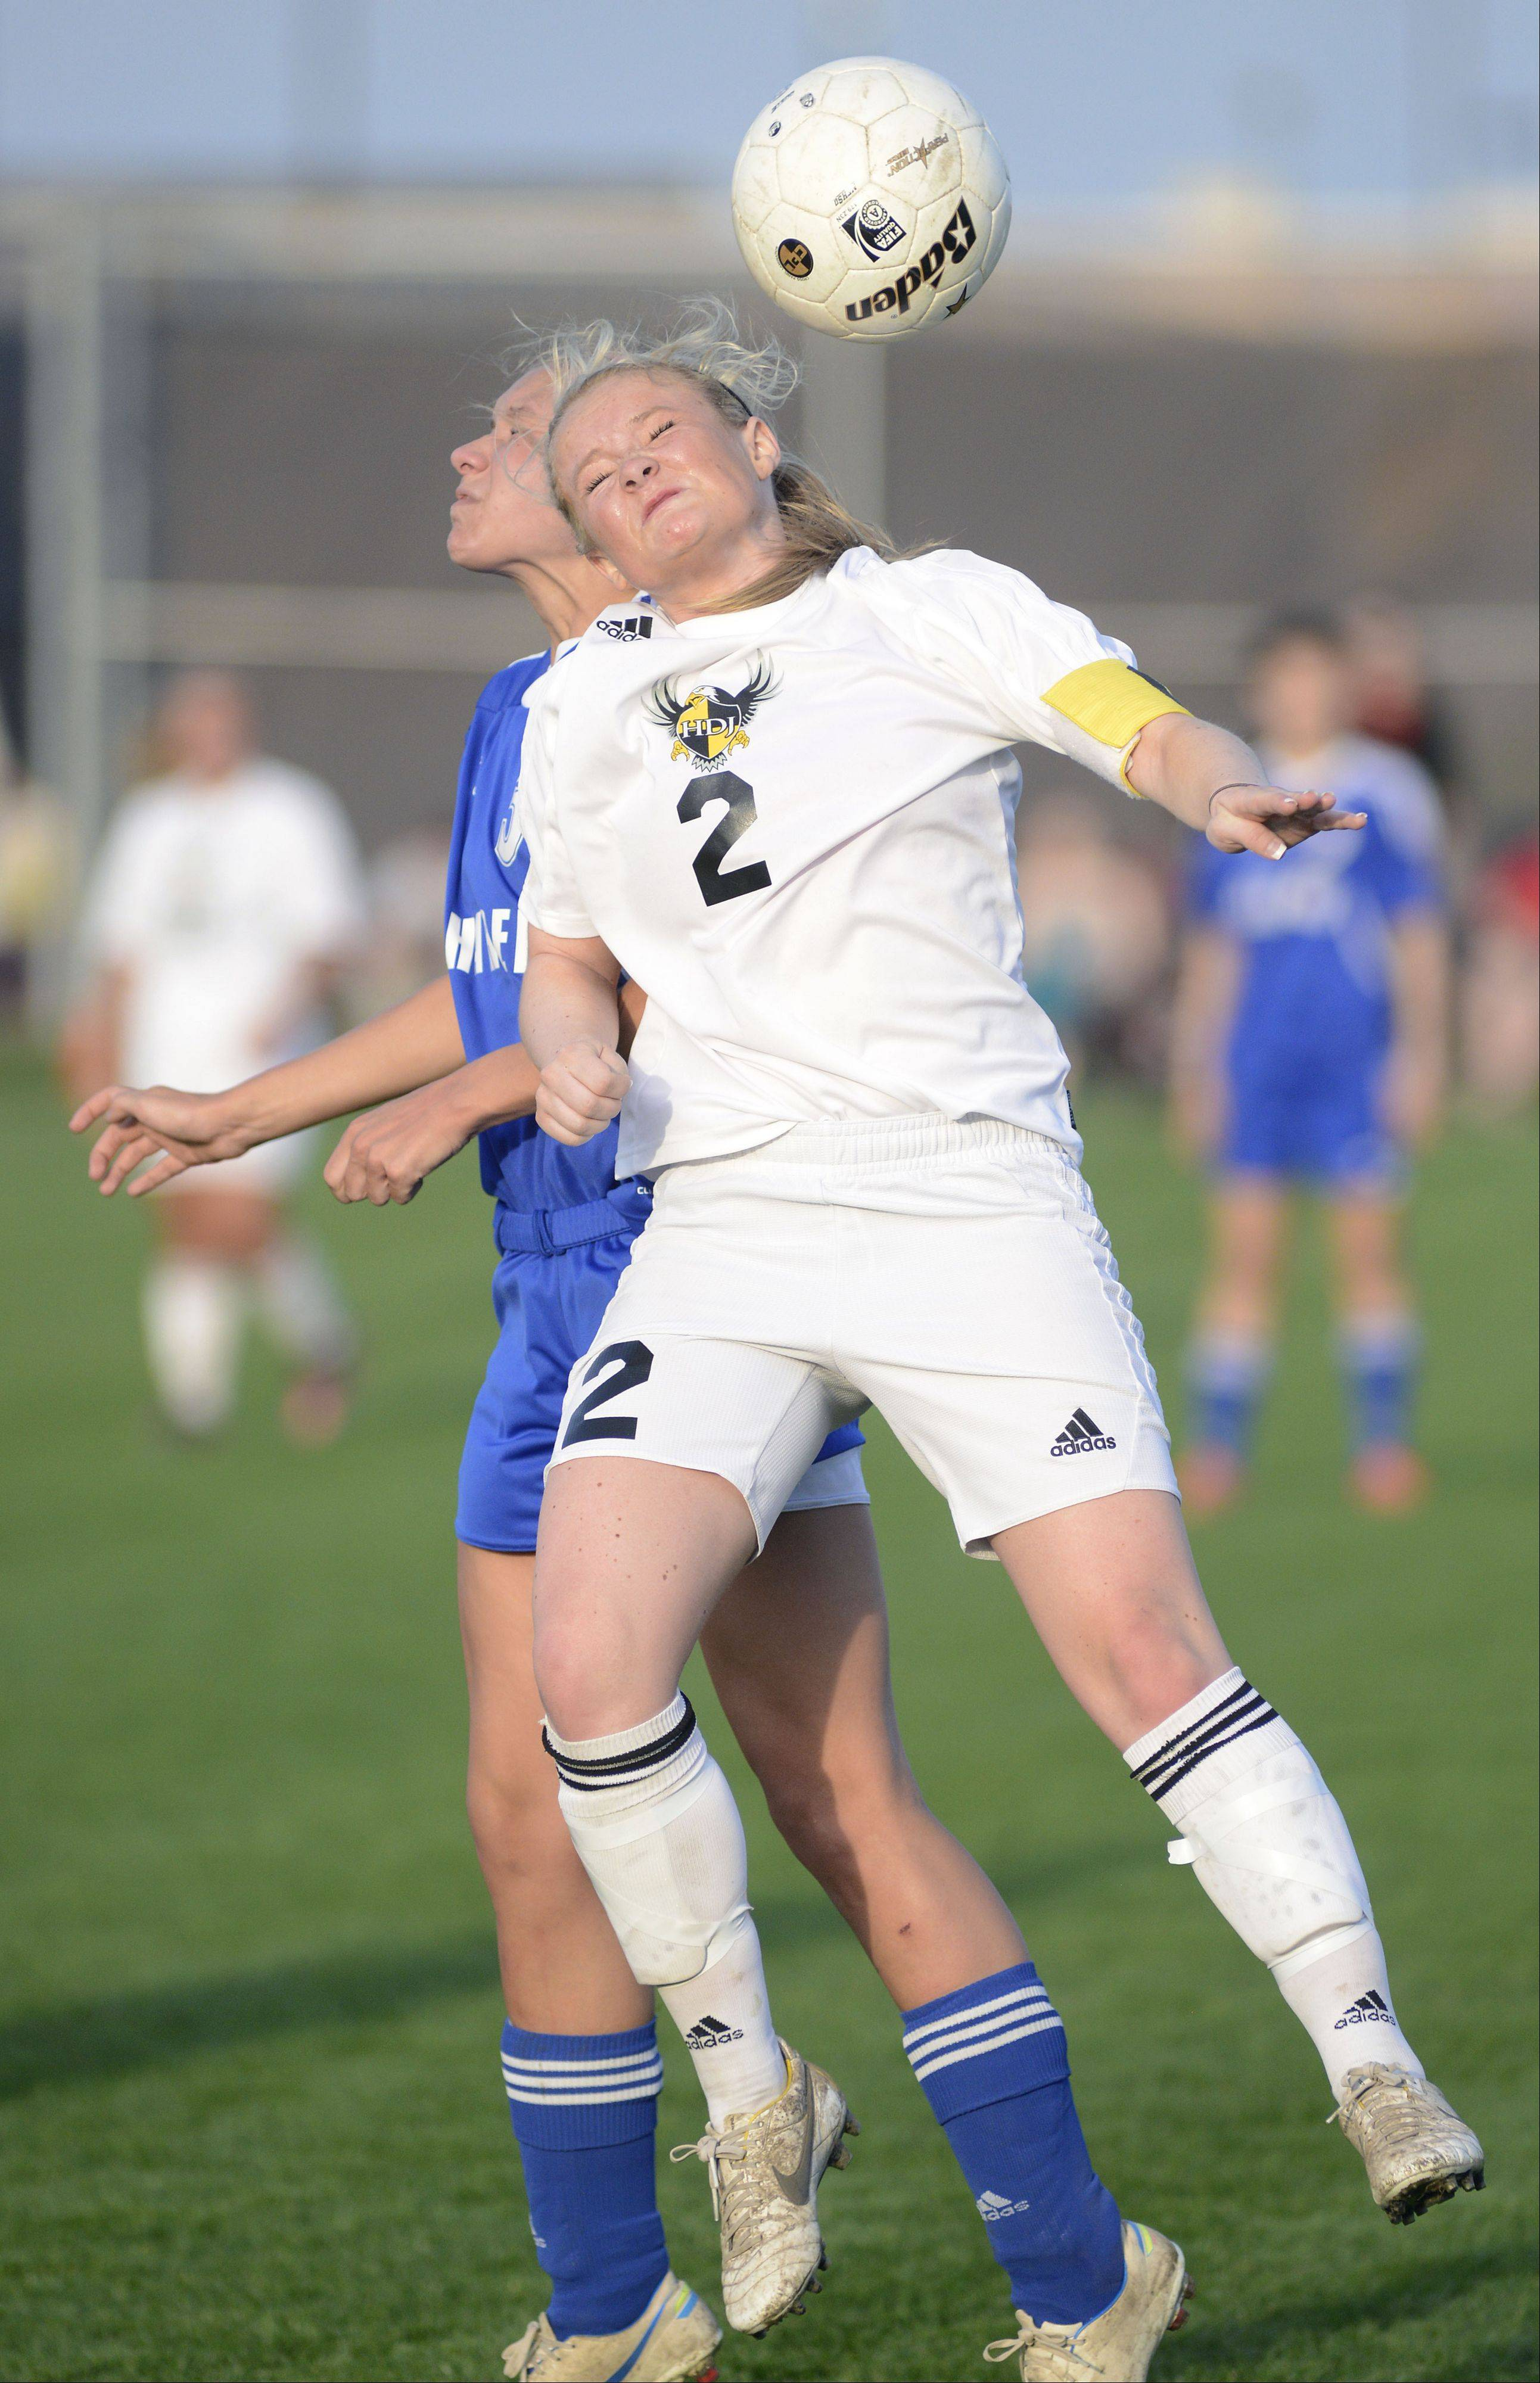 Dundee-Crown's Payton De Luga and Jacobs' Kylie Dennison head the ball in the first half on Tuesday.